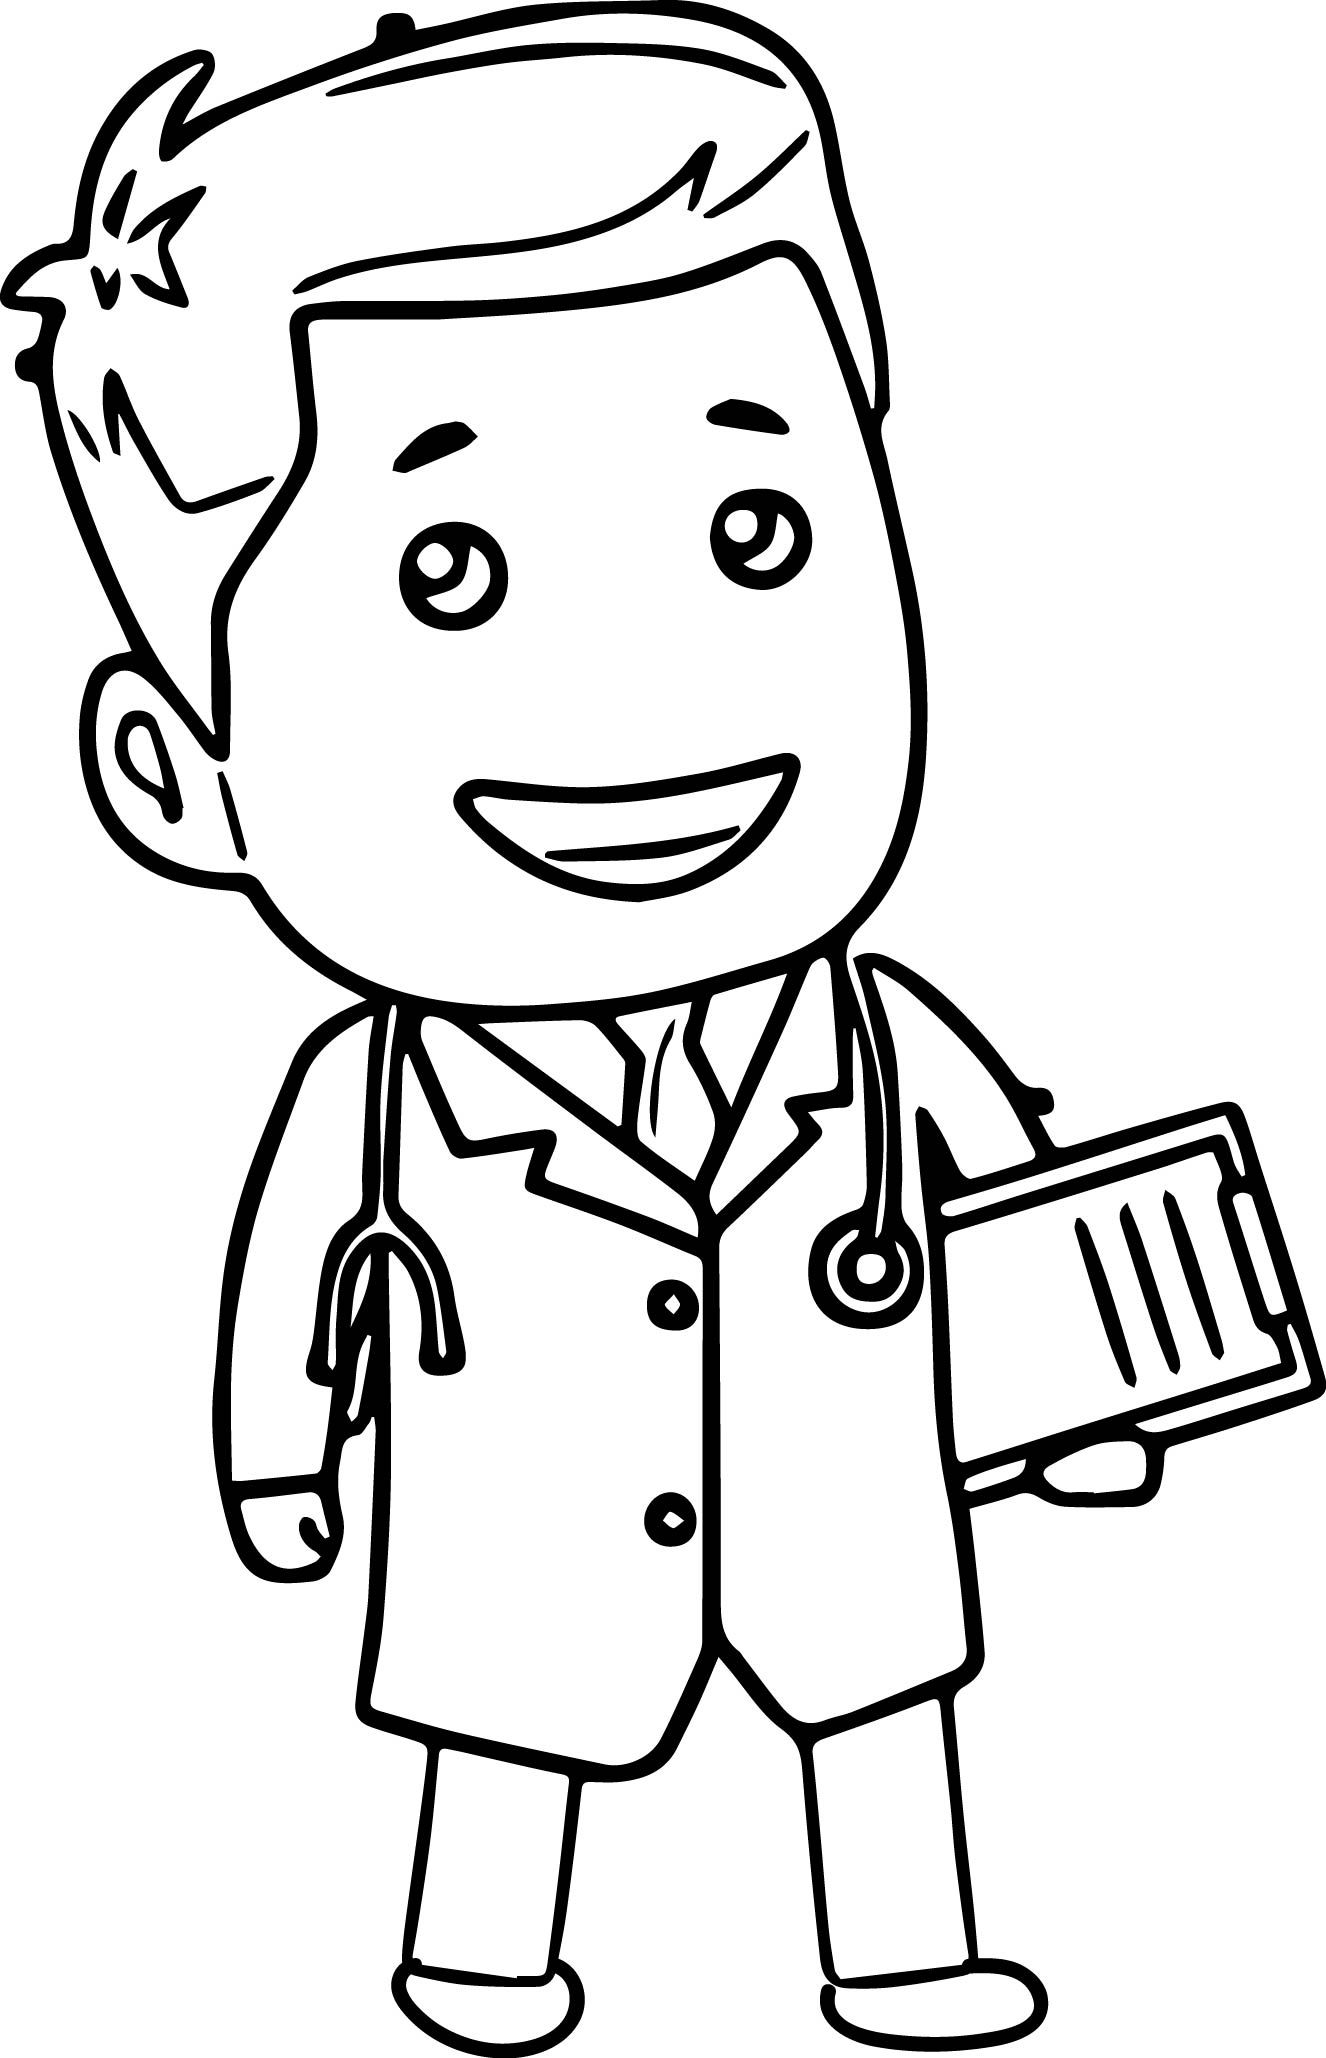 Doctor Tools Clipart Doctor_Cartoon_coloring_page.